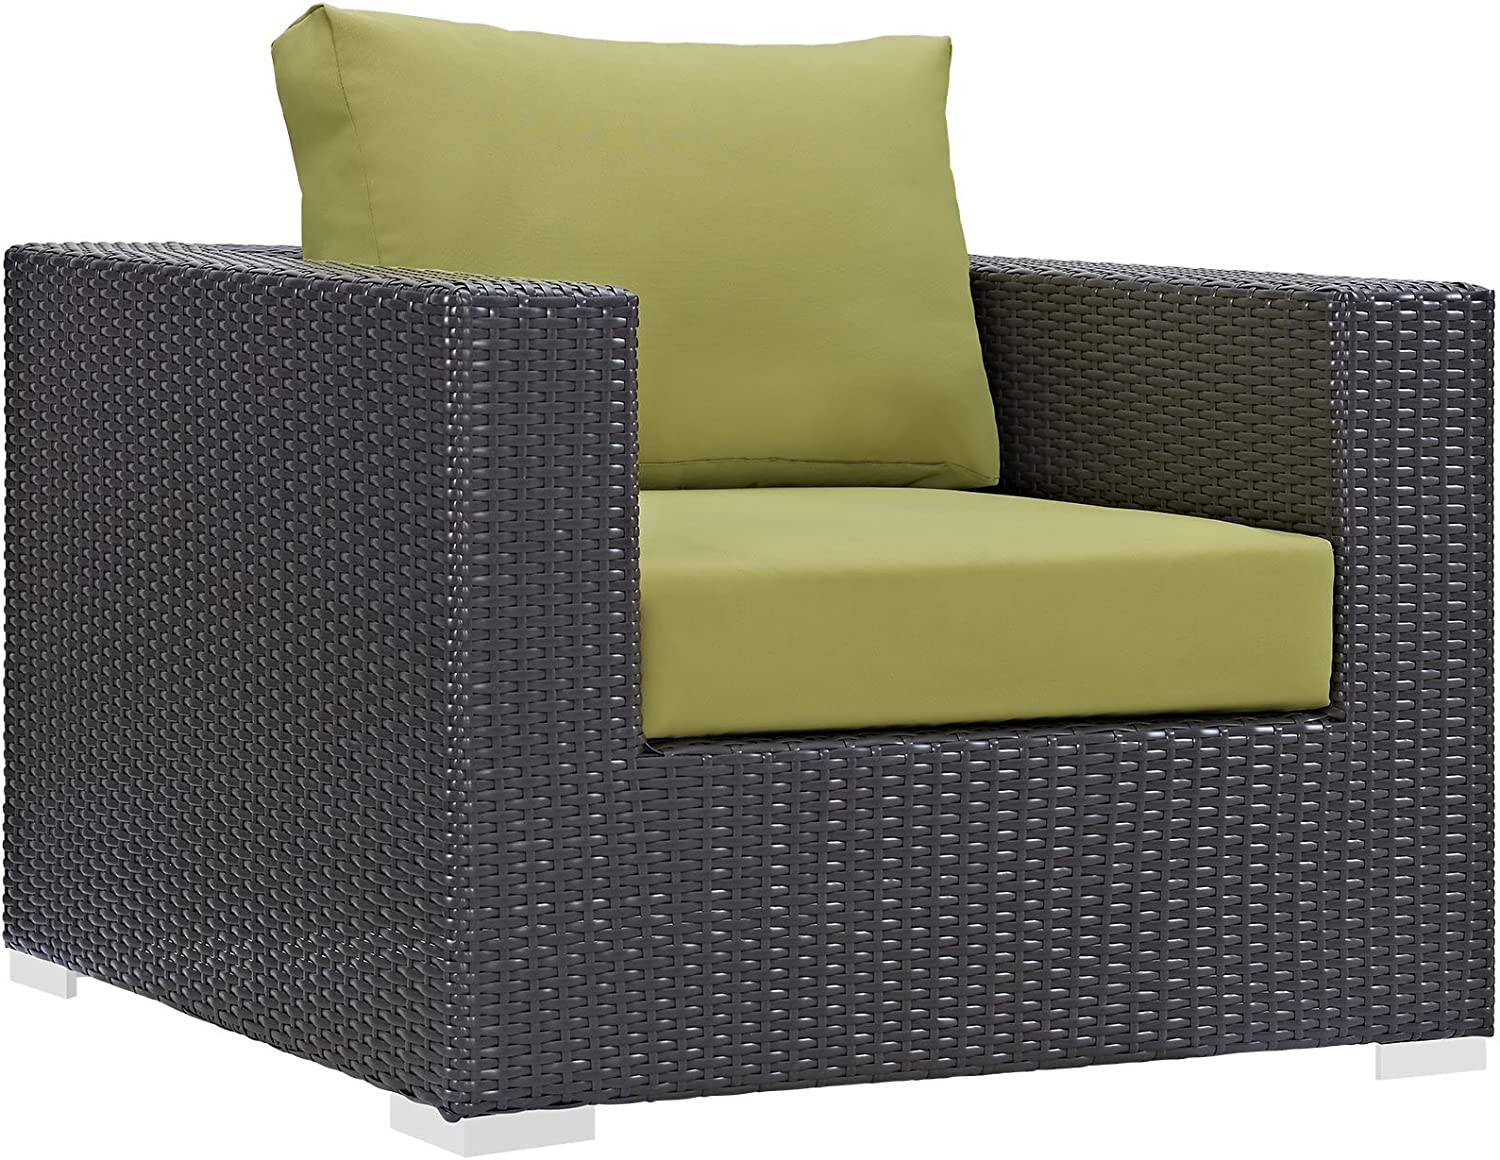 Modway Convene Wicker Rattan Outdoor Max 88% OFF New product!! with Chair Cushio Patio Arm